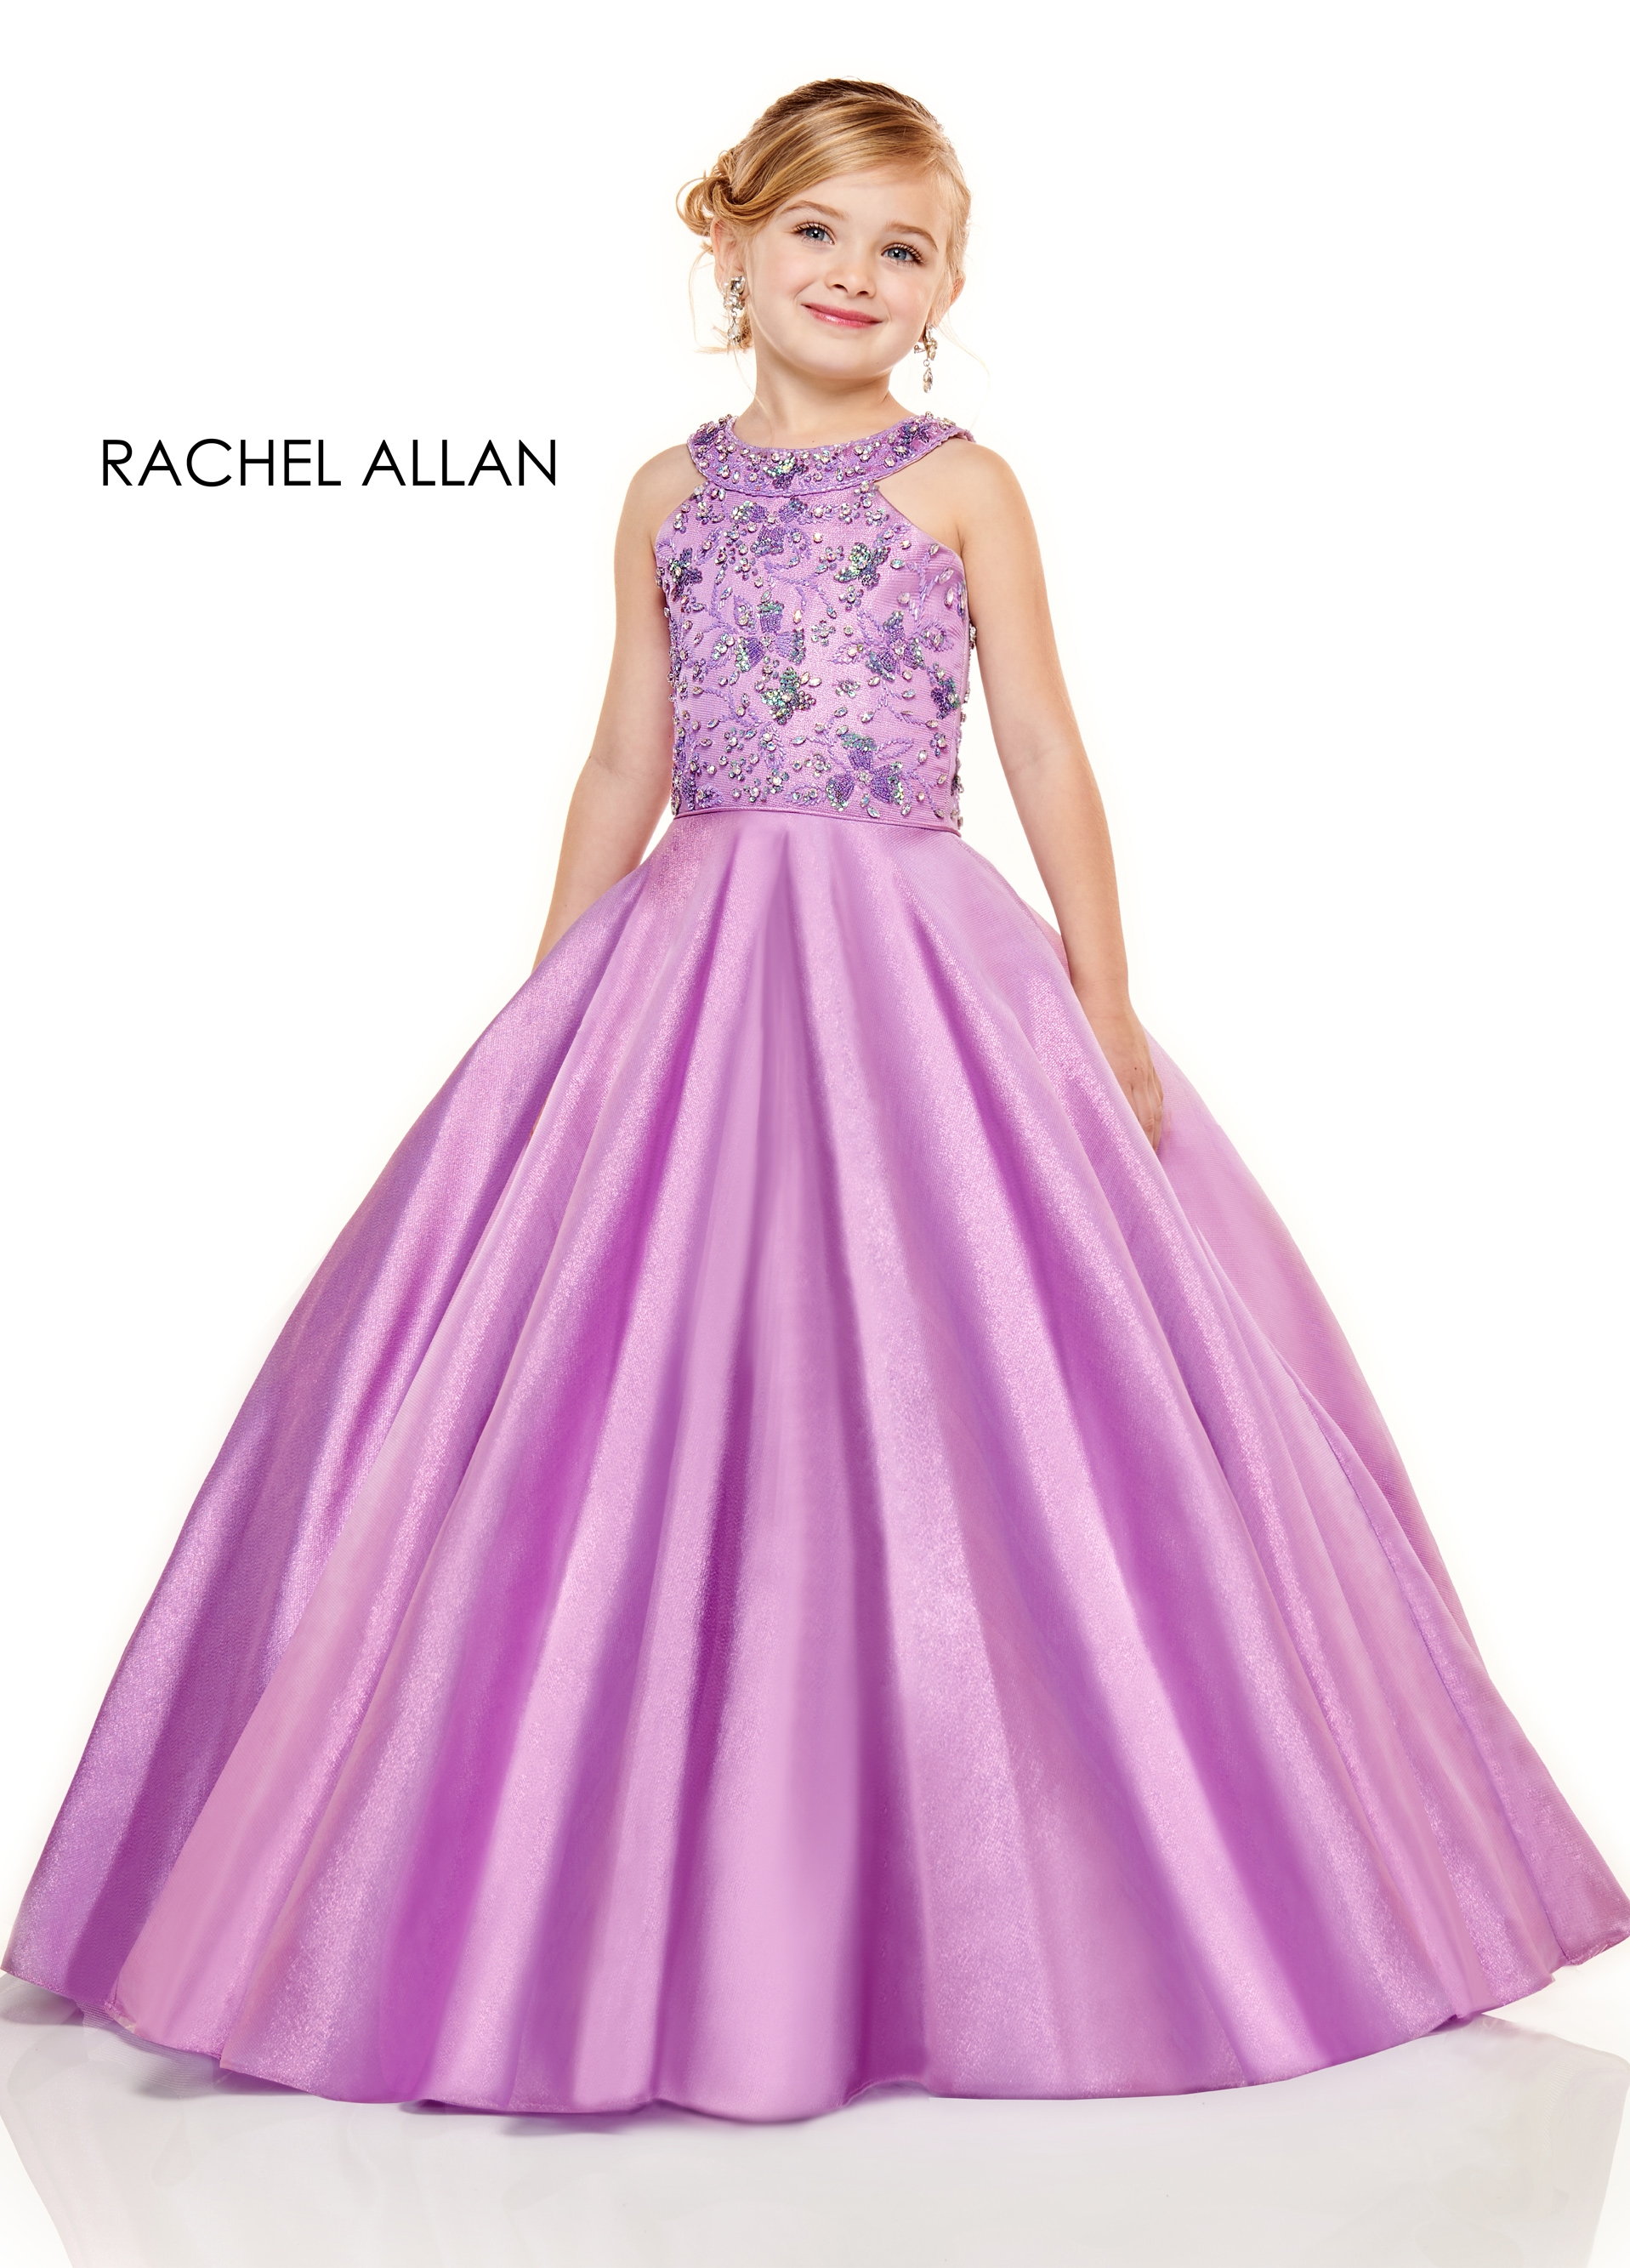 Halter Ball Gowns Little Girl Pageant Dresses in Purple Color